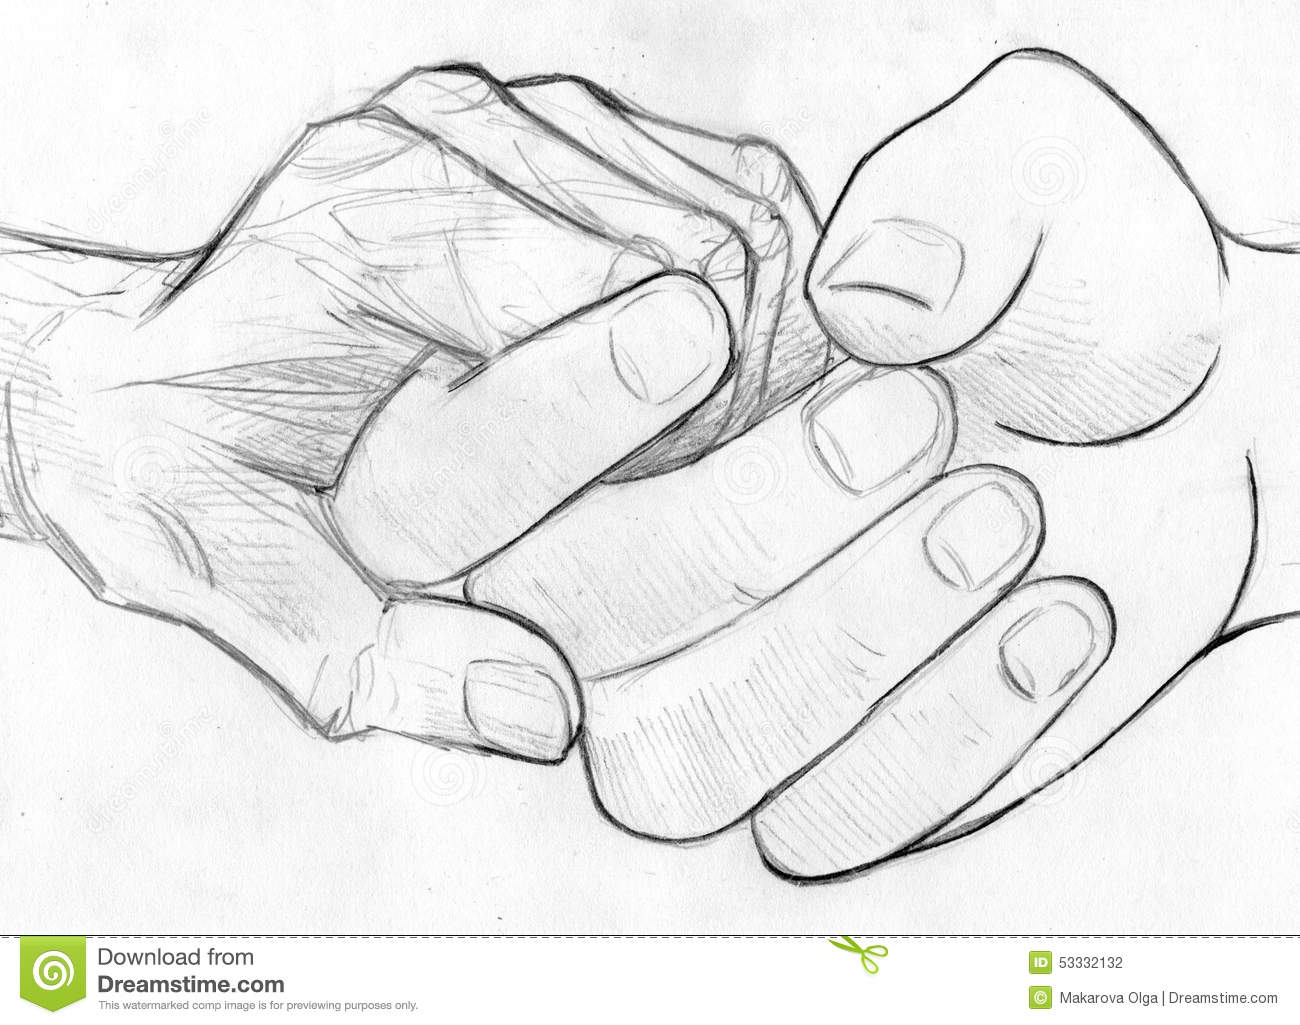 1300x1025 Pencil Sketch Of Boy And Girl Holding Hands